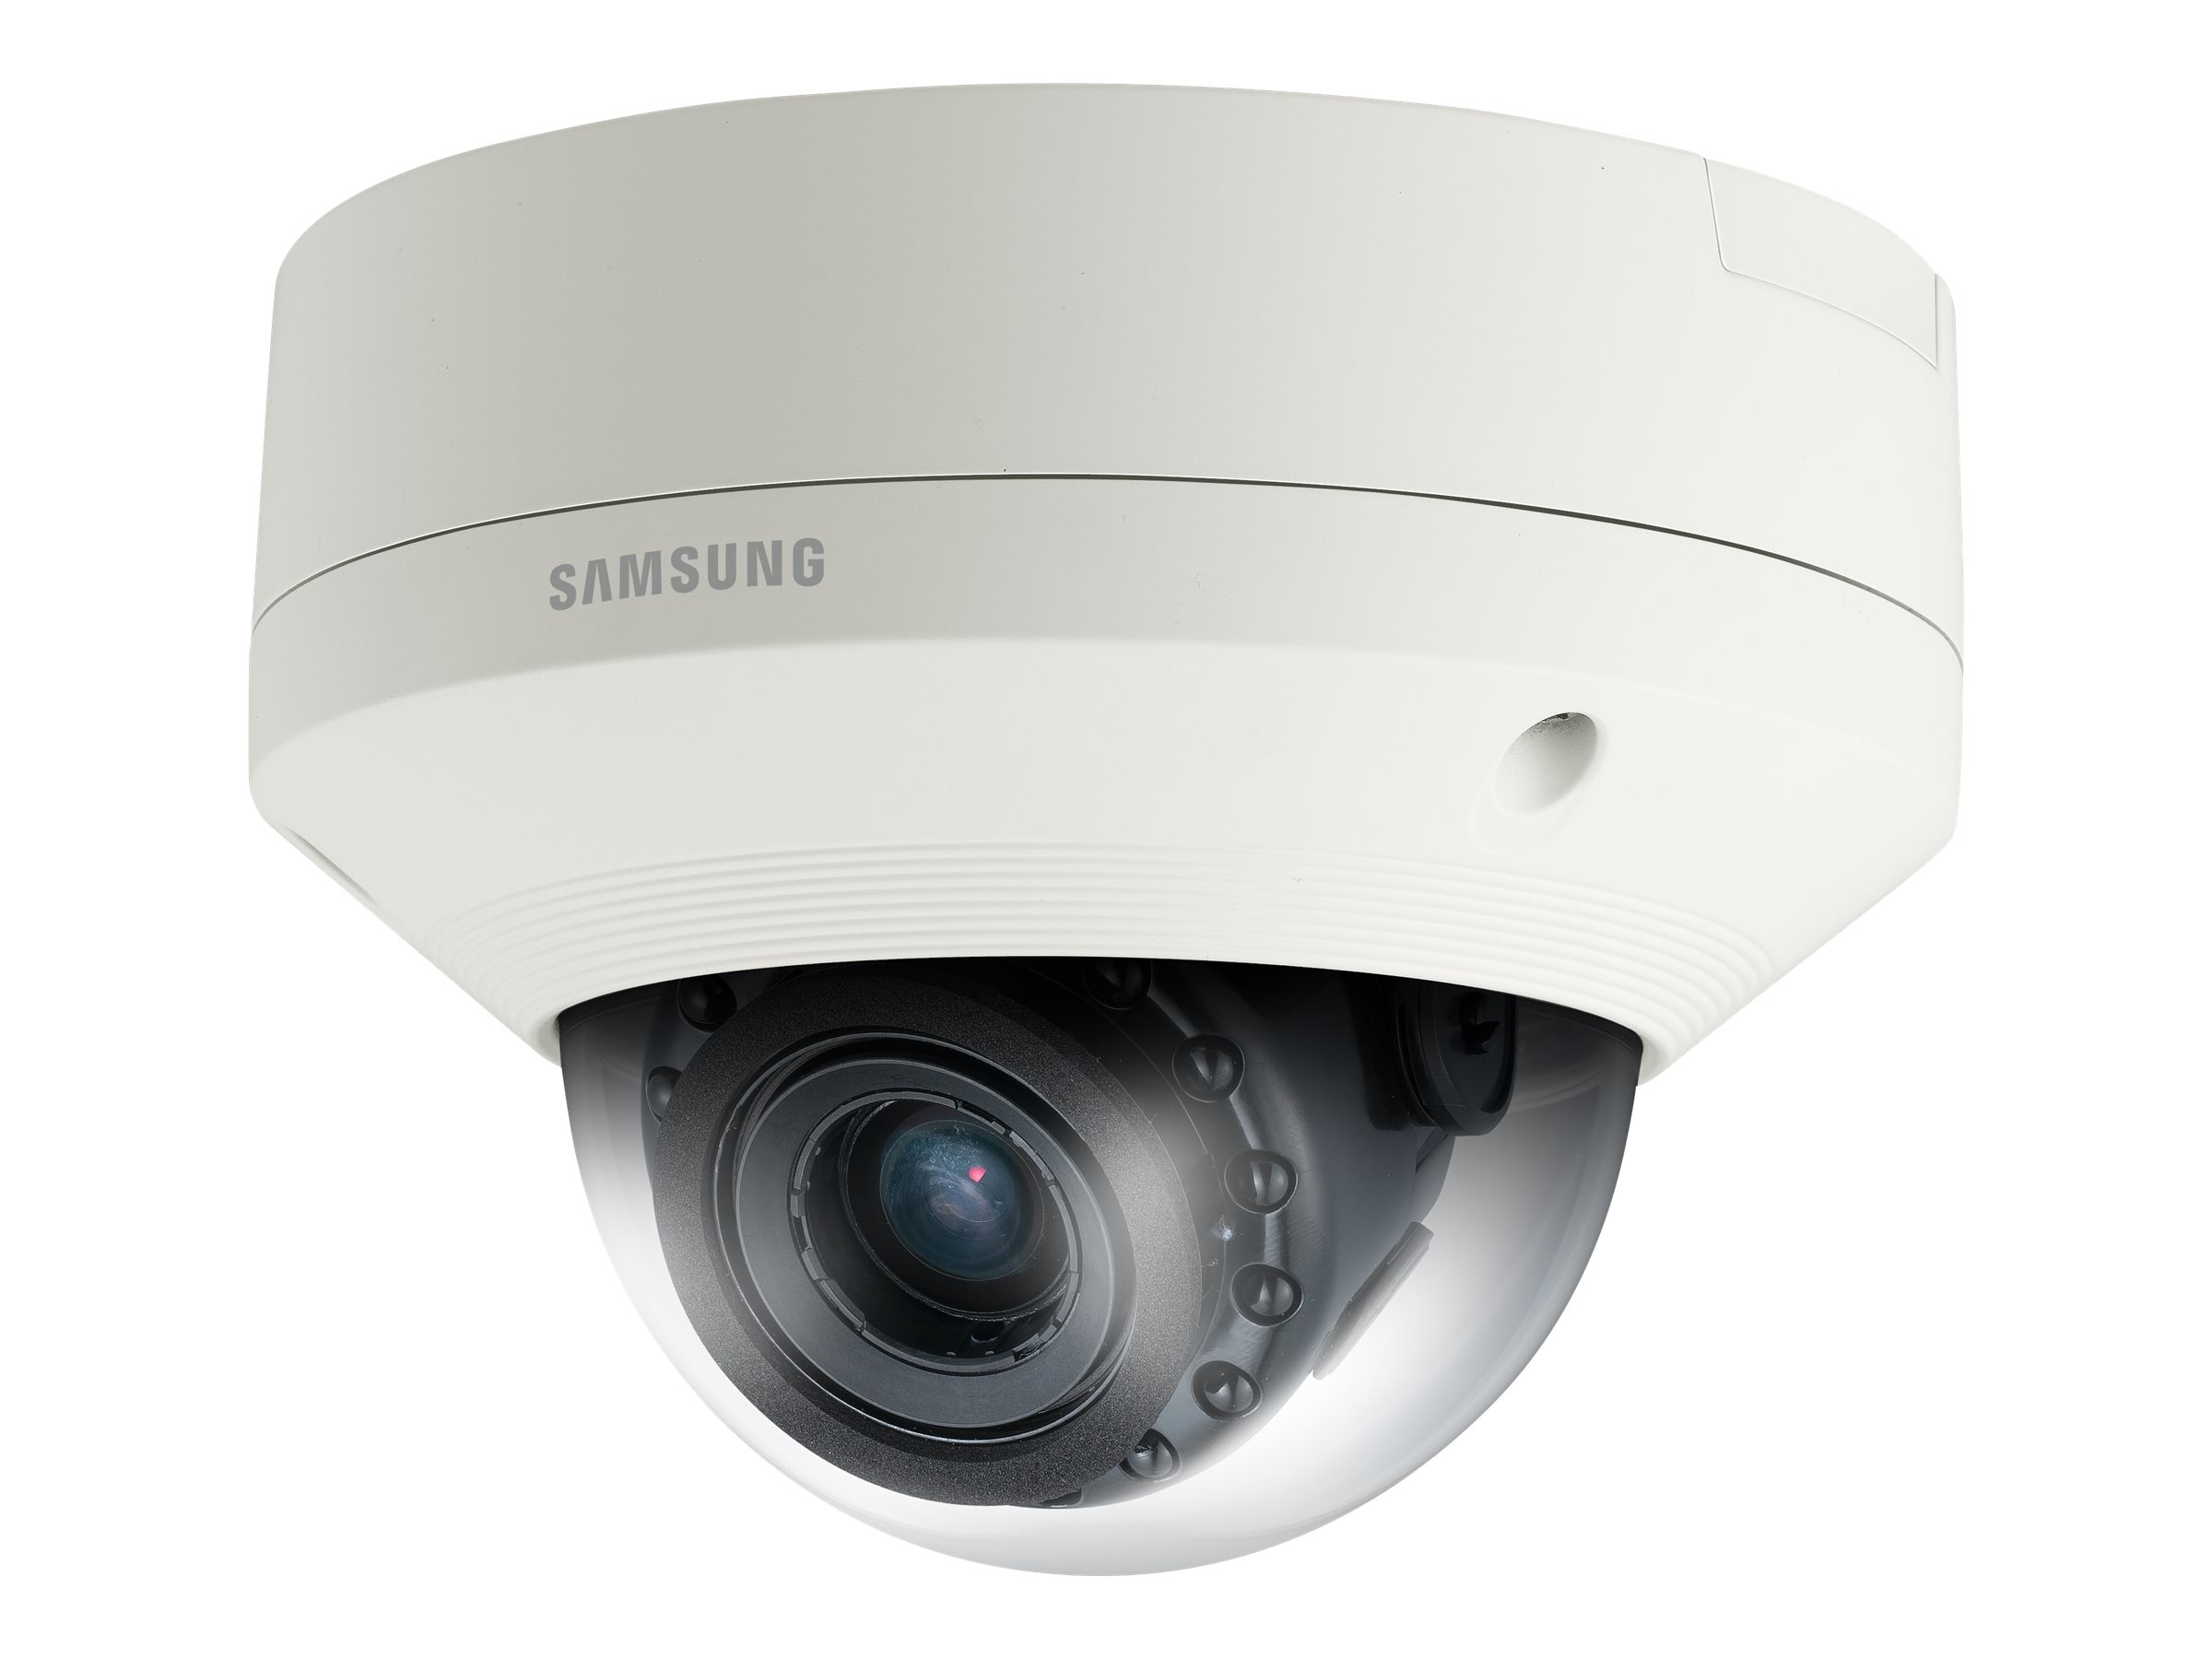 Samsung 2MP Full HD Vandal-Resistant Network IR Dome Camera, SNV-6085R, 31631438, Cameras - Security